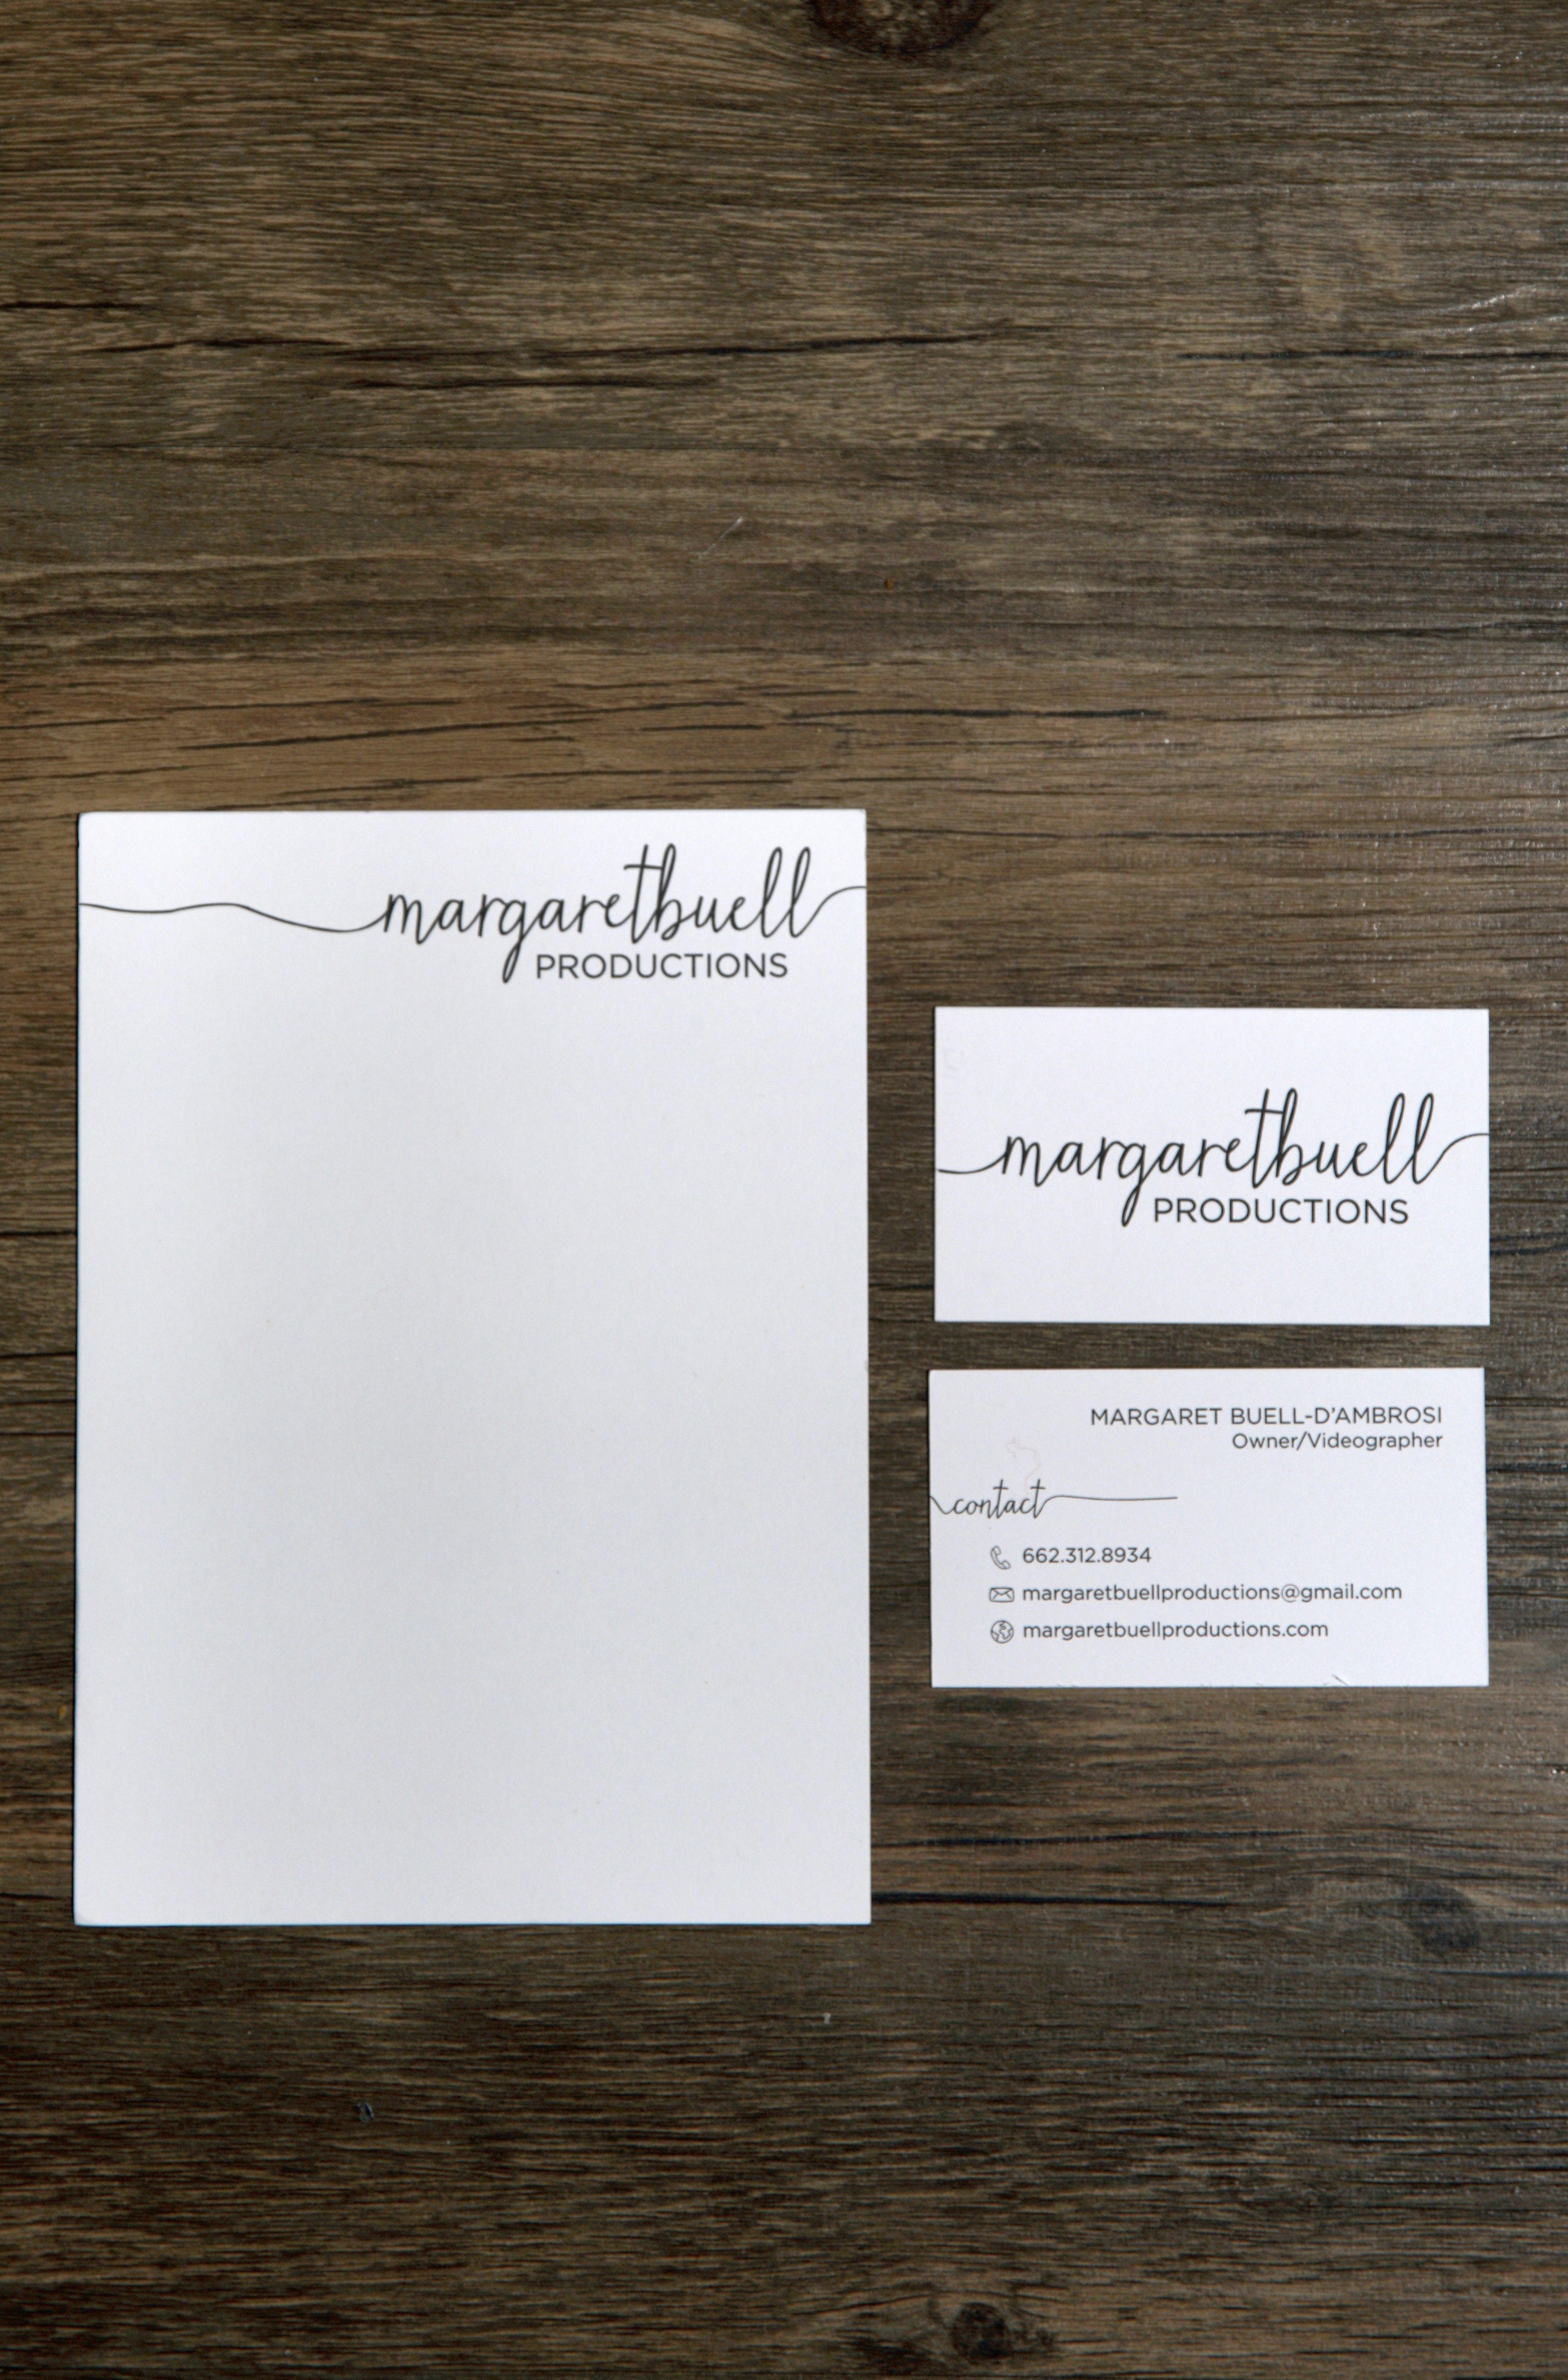 Brand identity and stationary design business cards and note cards brand identity and stationary design business cards and note cards reheart Image collections